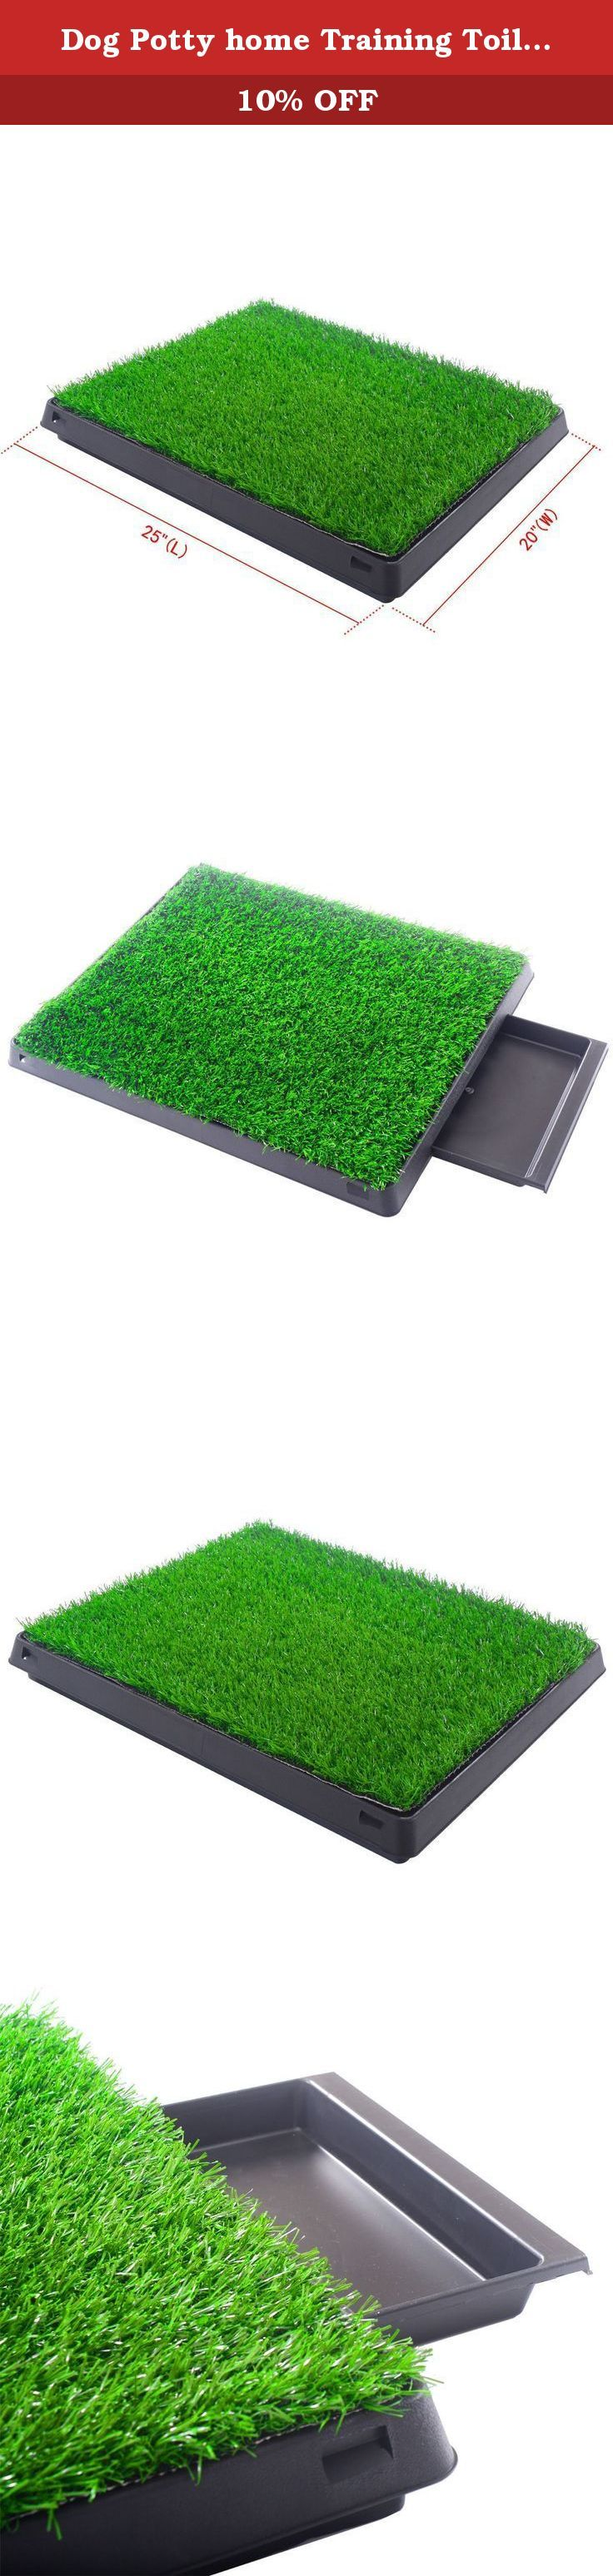 Dog potty home training toilet pad grass surface pet park mat